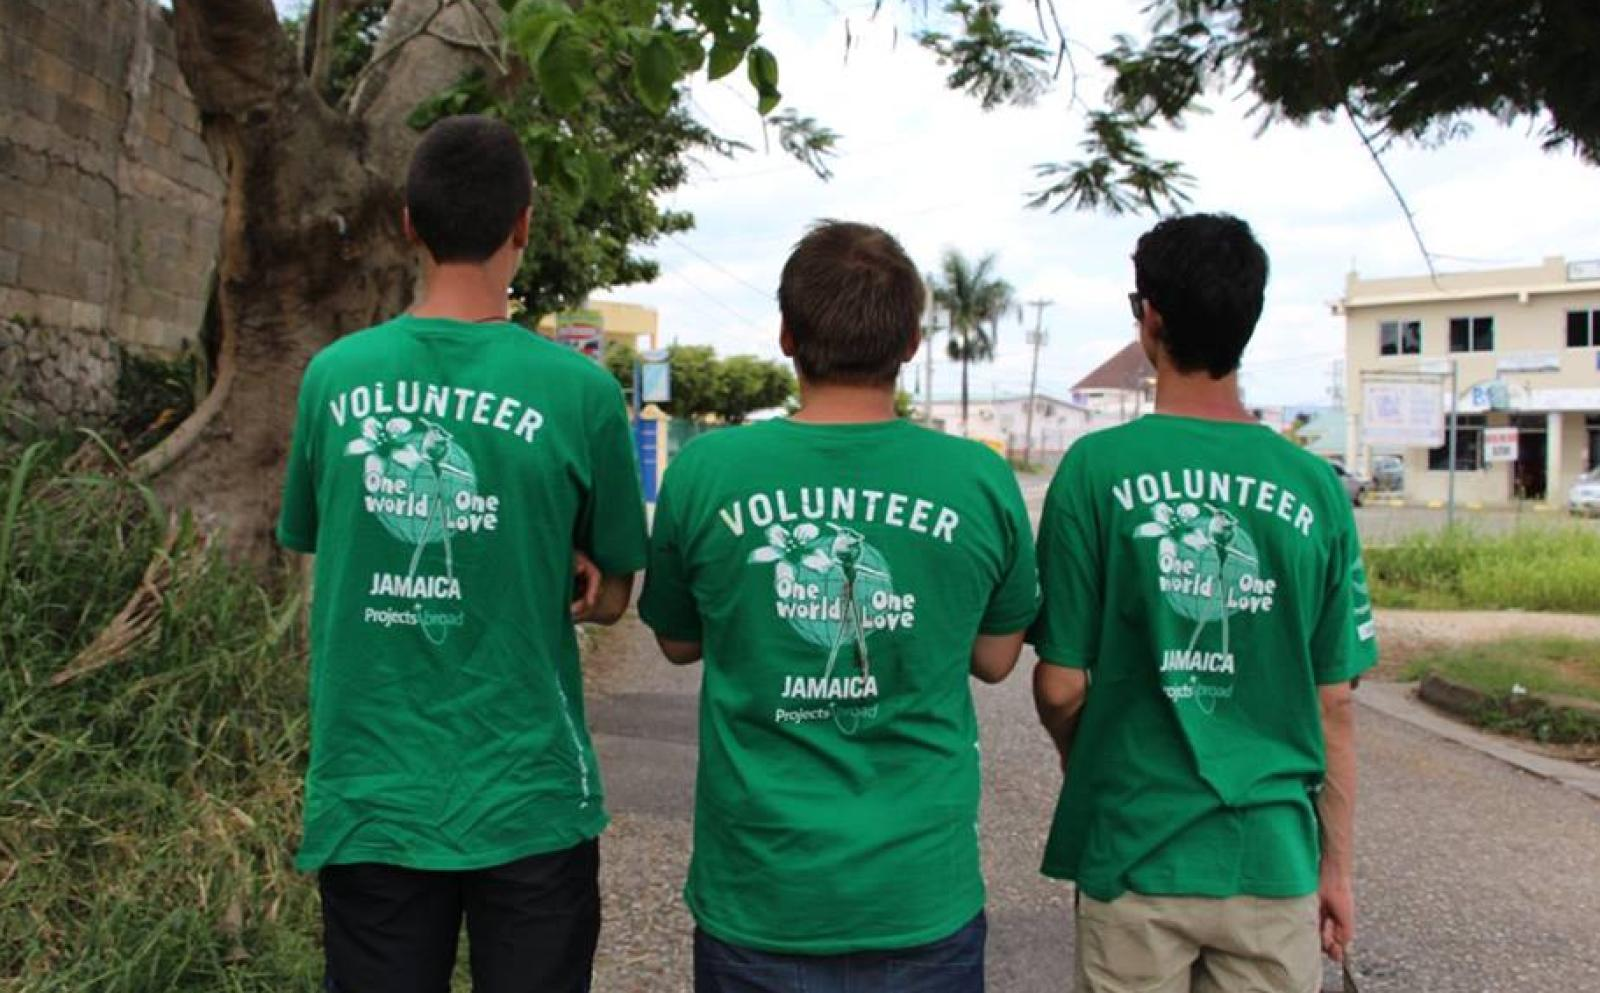 Volunteers walk the streets of Mandeville during their English language course in Jamaica.